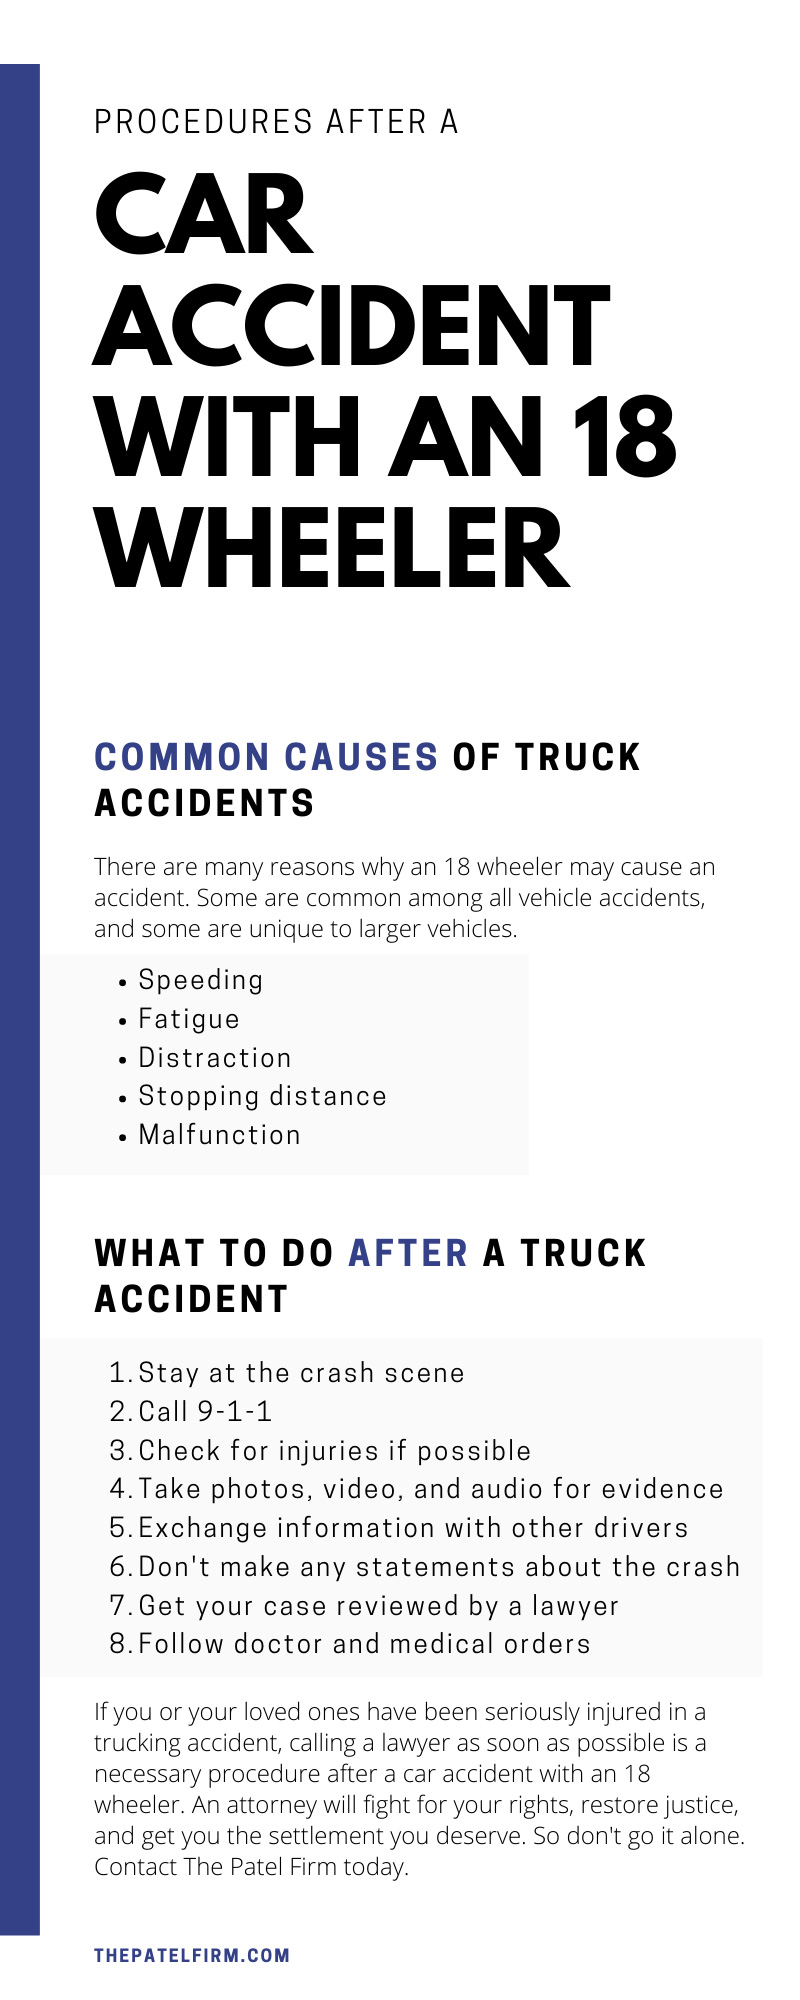 Procedures After a Car Accident With an 18-Wheeler